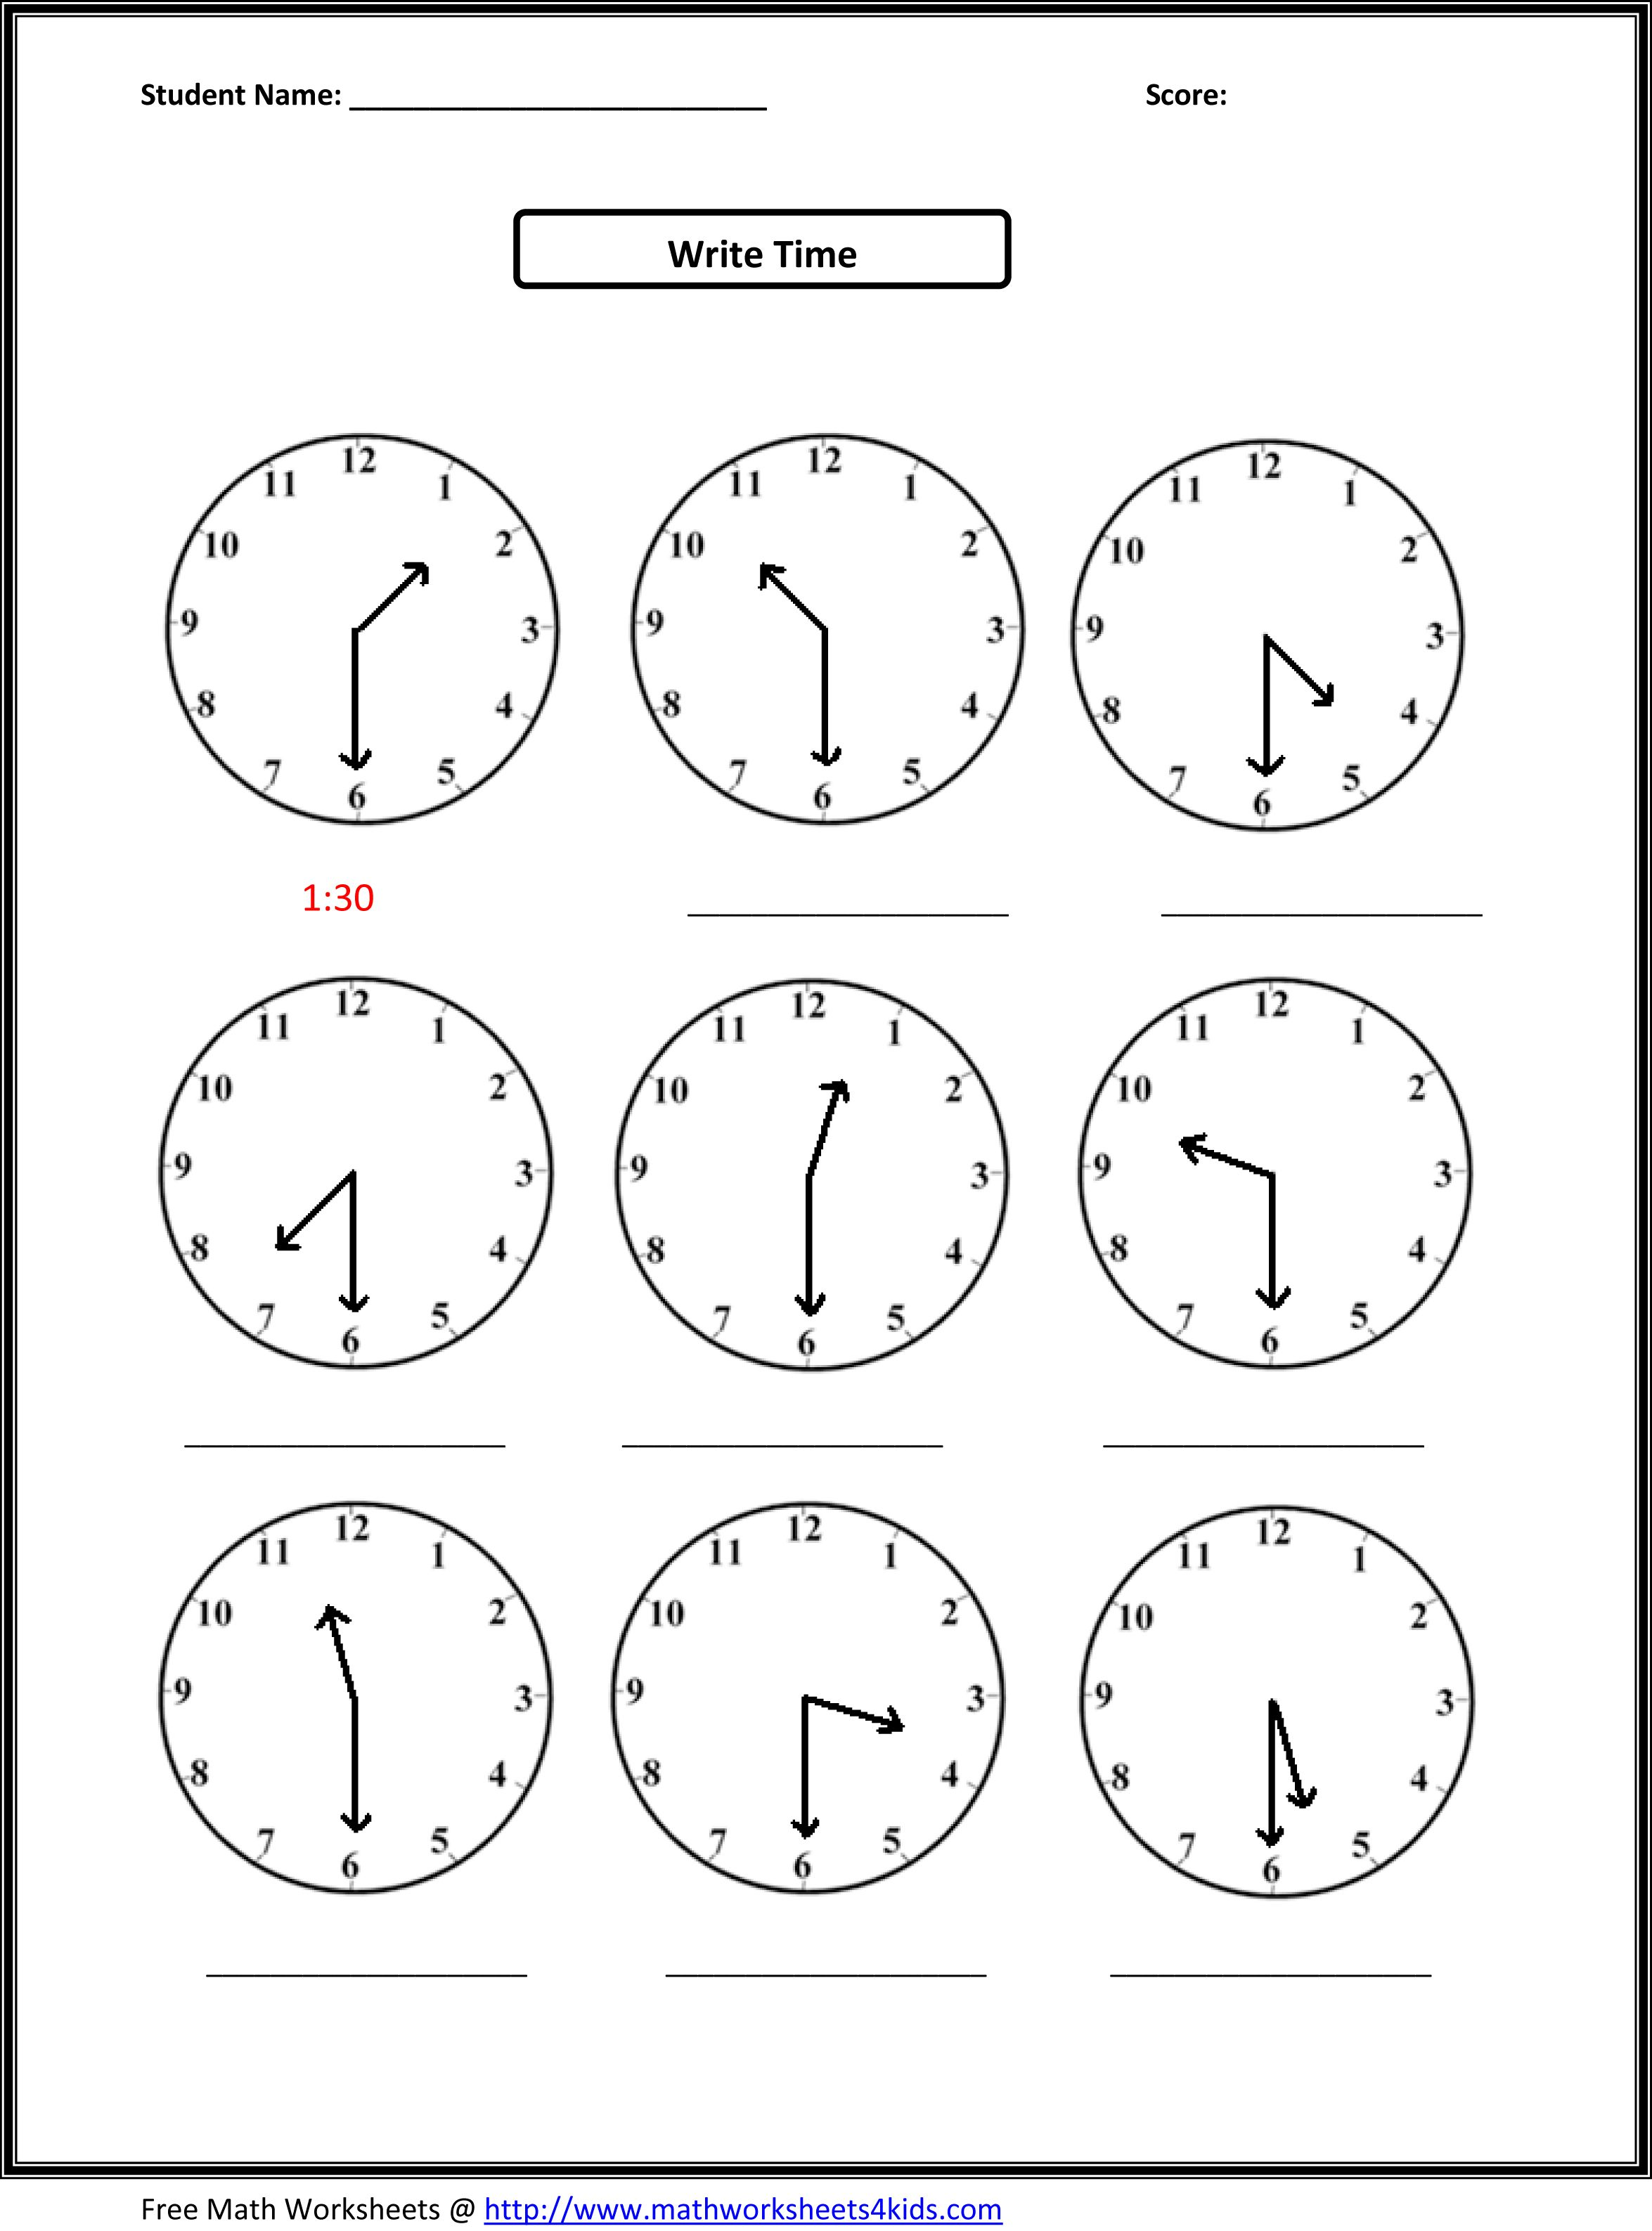 Weirdmailus  Winning Worksheet On Time For Grade   Reocurent With Luxury Free Printable Telling Time Worksheets Nd Grade  Reocurent With Appealing Worksheet On Adding And Subtracting Fractions Also  Kingdoms Worksheet In Addition Elapsed Time Worksheets Nd Grade And Excel  Combine Worksheets As Well As Script Writing Worksheets Additionally Transformations Translations Rotations Reflections Worksheet From Reocurentcom With Weirdmailus  Luxury Worksheet On Time For Grade   Reocurent With Appealing Free Printable Telling Time Worksheets Nd Grade  Reocurent And Winning Worksheet On Adding And Subtracting Fractions Also  Kingdoms Worksheet In Addition Elapsed Time Worksheets Nd Grade From Reocurentcom